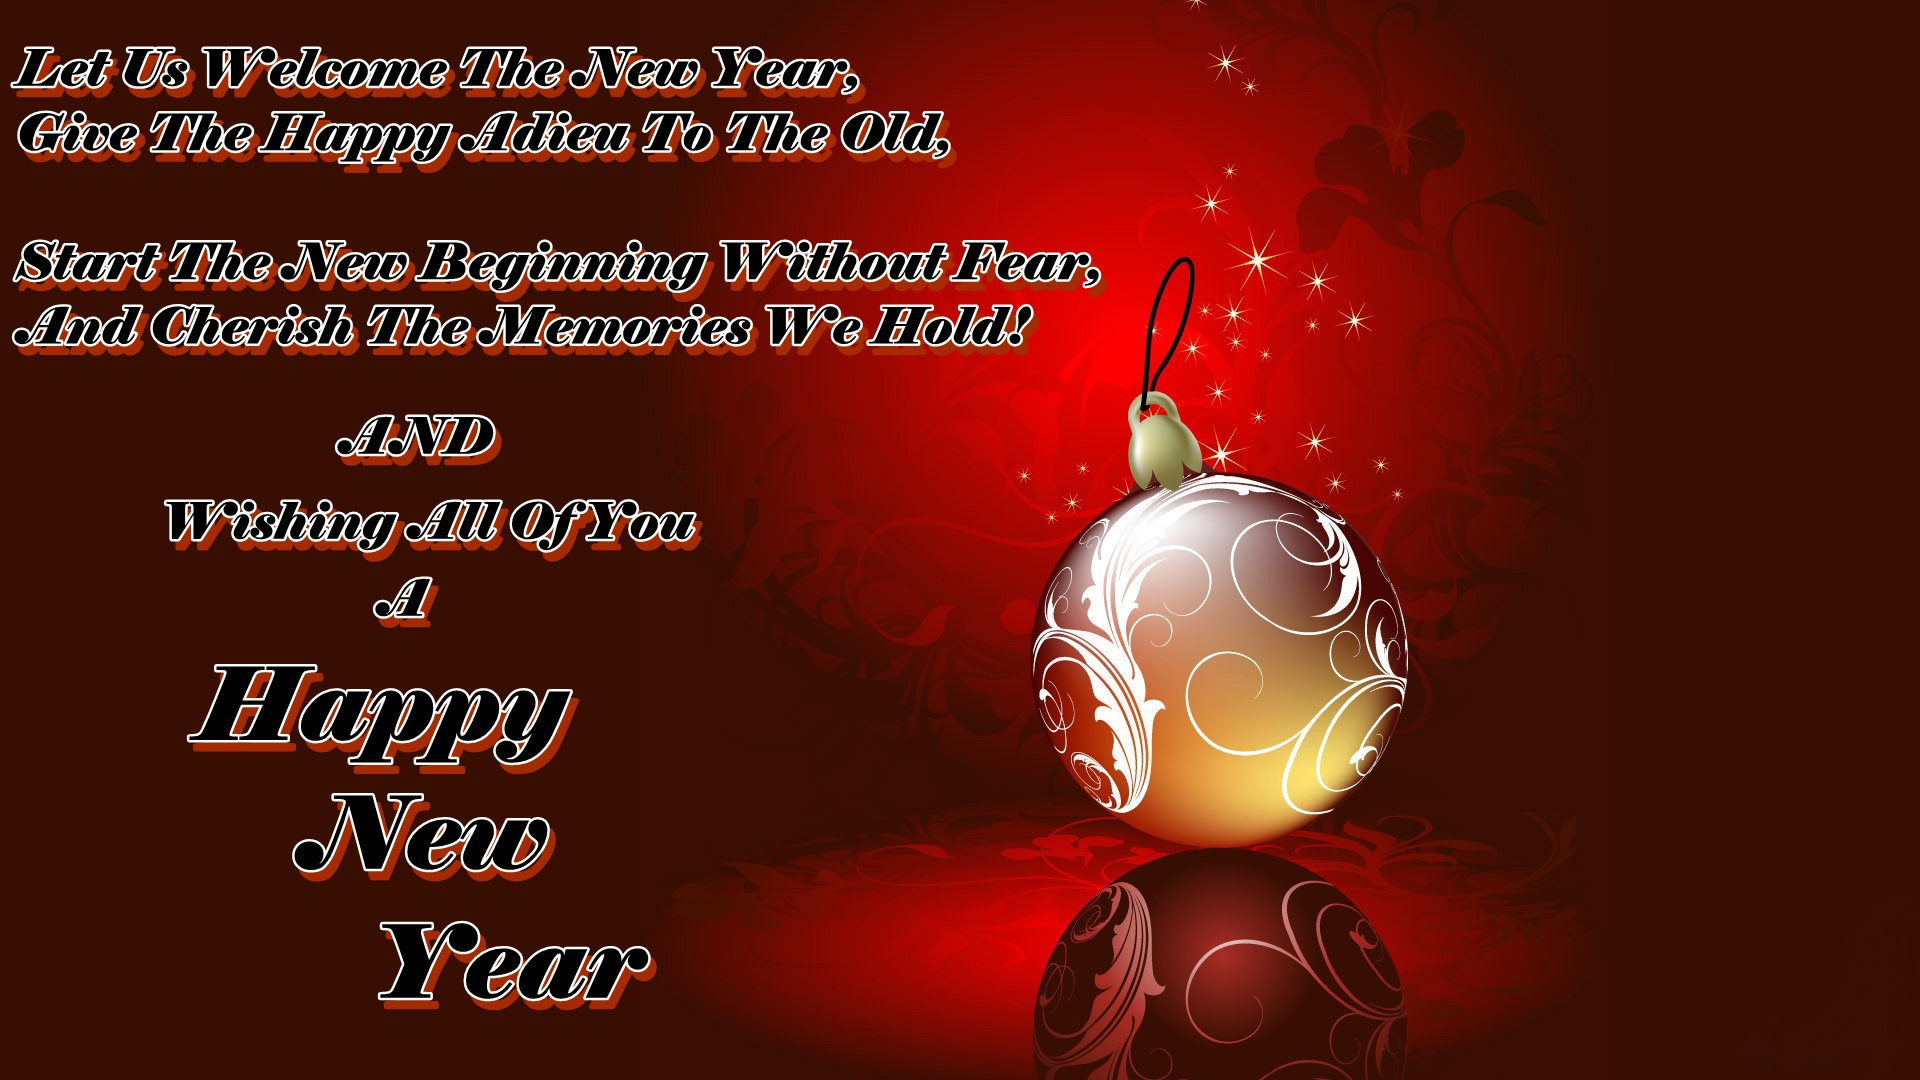 Season greeting new year messages merry christmas and happy new season greeting new year messages kristyandbryce Choice Image